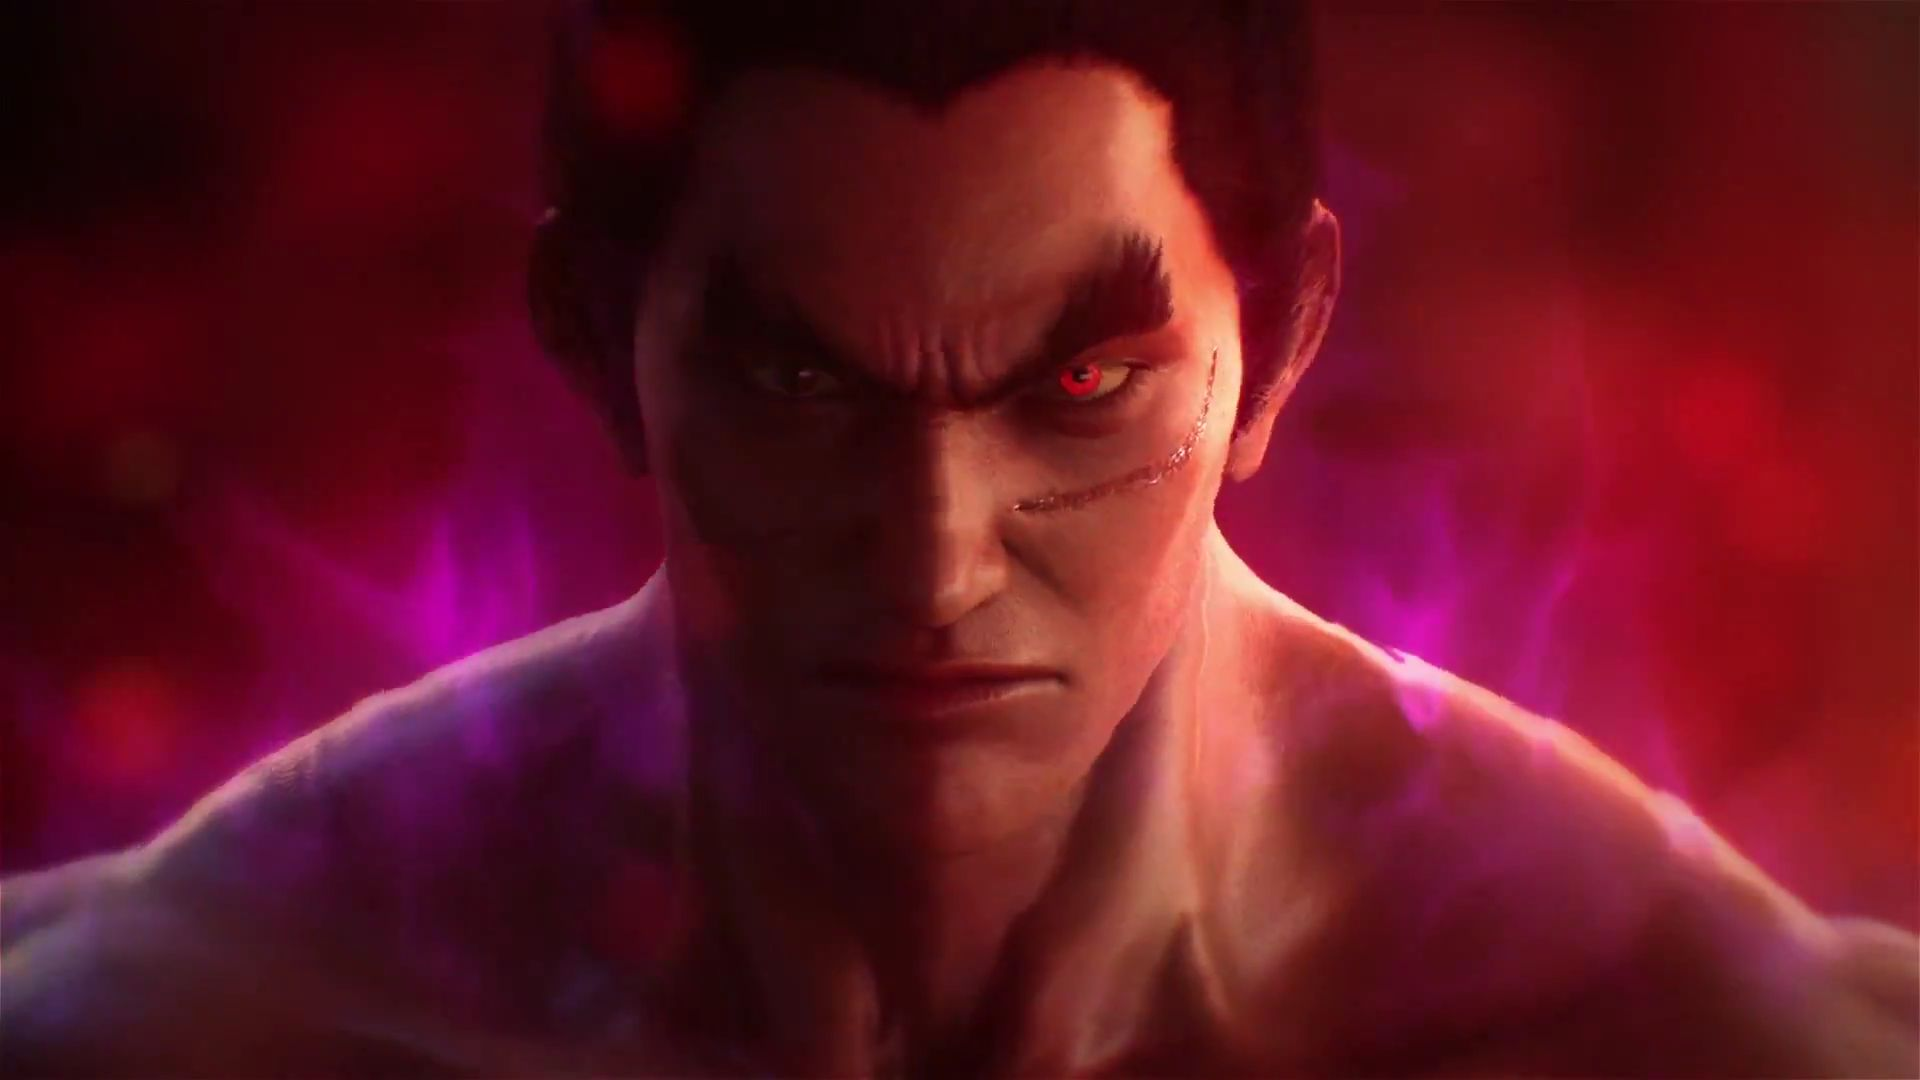 Dragon Wallpaper Hd For Pc Tekken 7 S Fantastic Opening Cinematic Will Get Your Blood